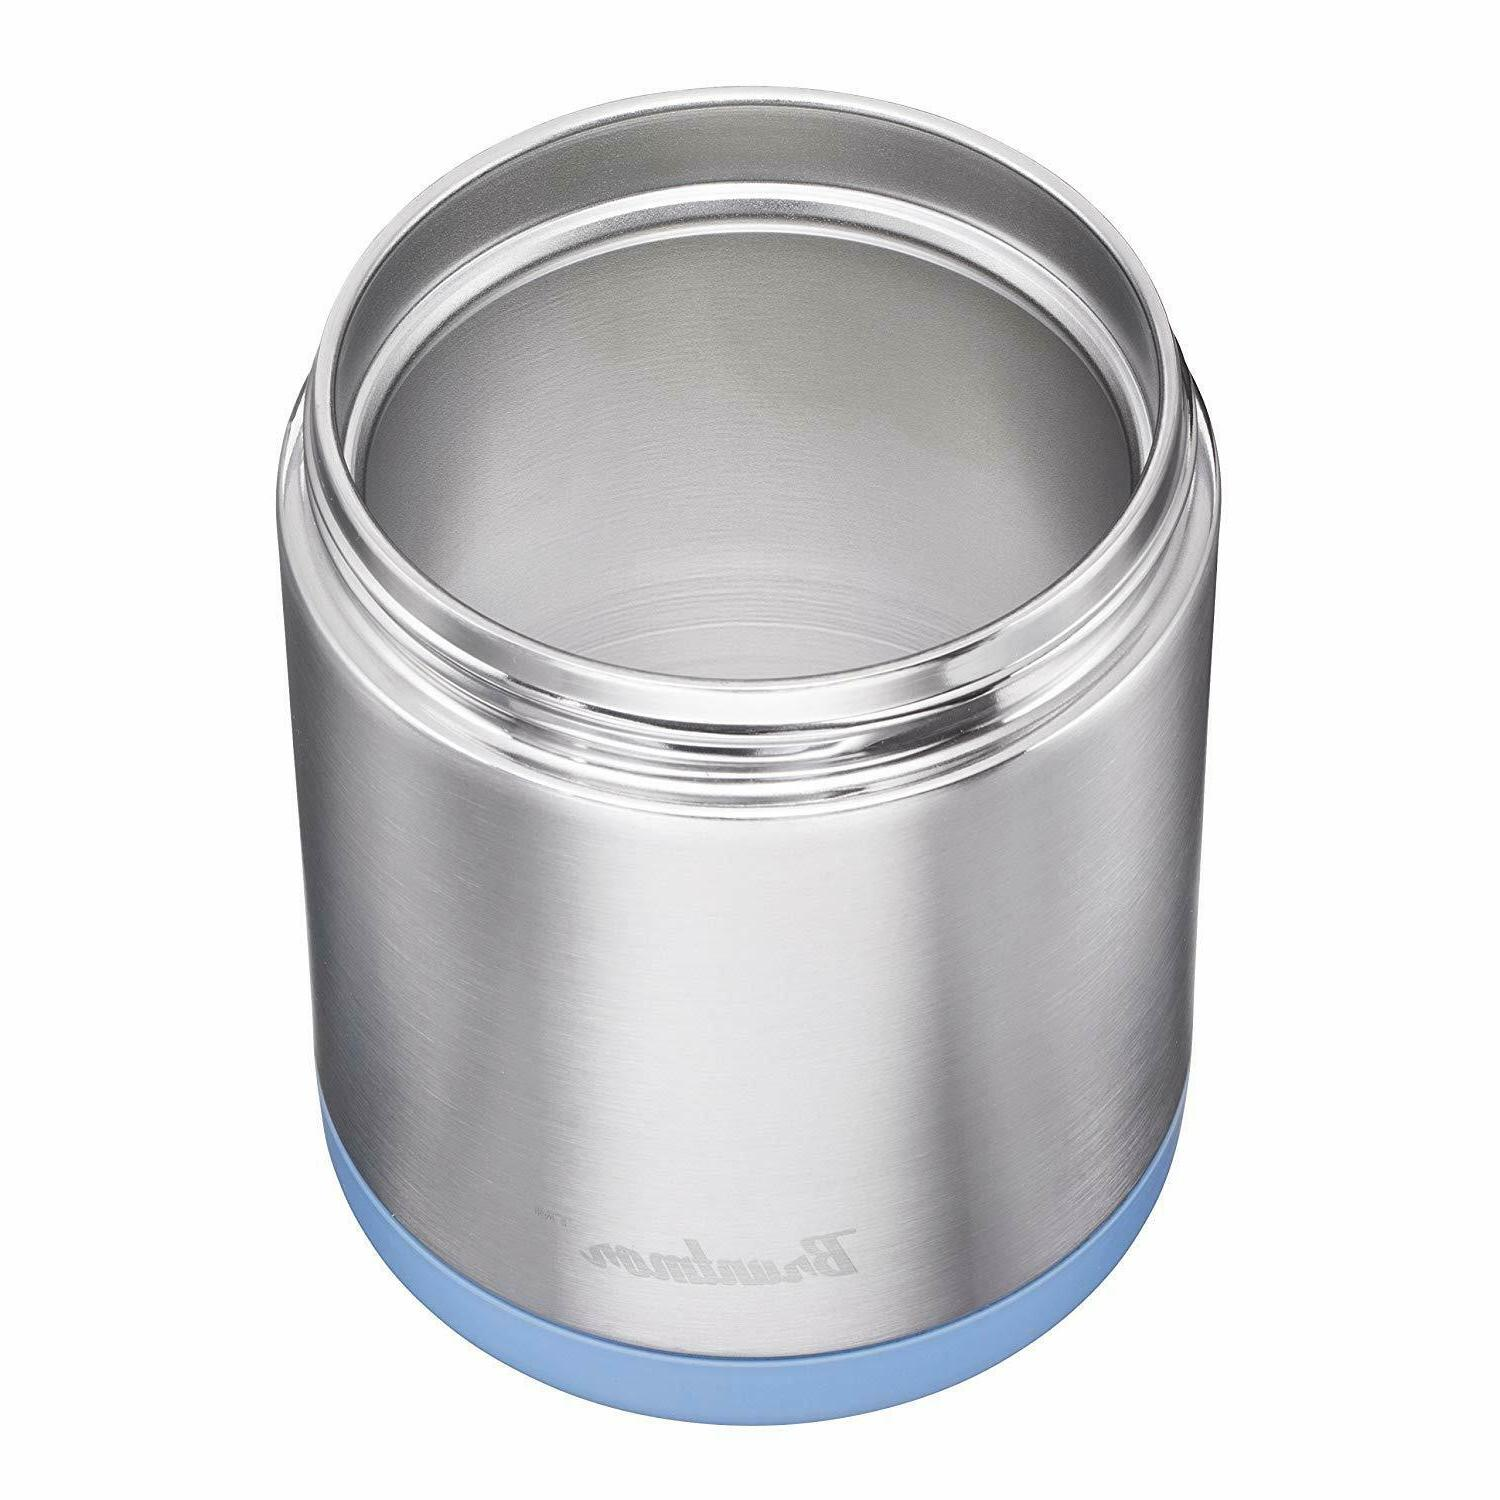 Bruntmor Stainless Food Jar Containers